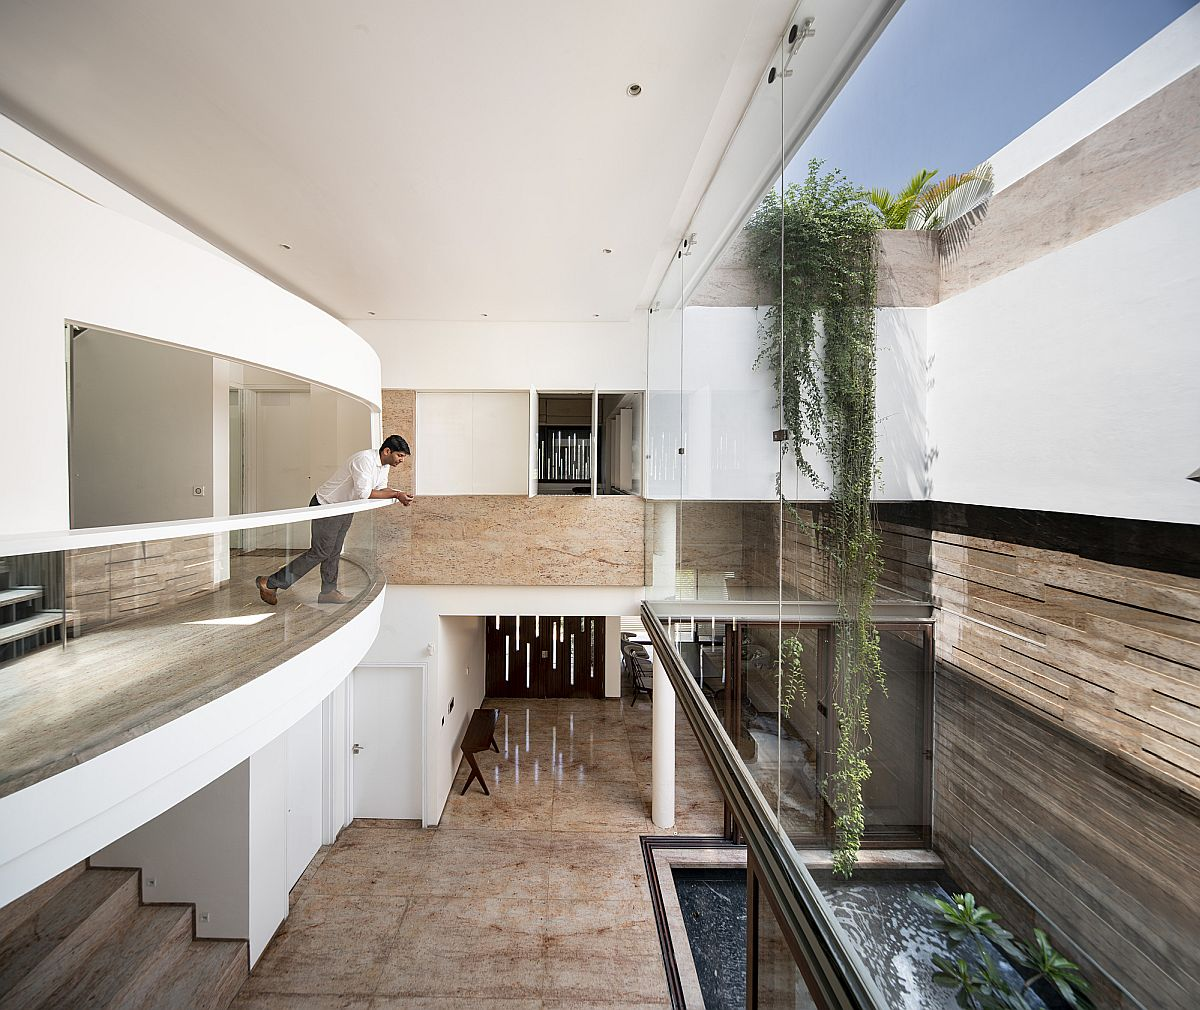 Upper level of the house is designed to overlook the public areas along with a view of the courtyard